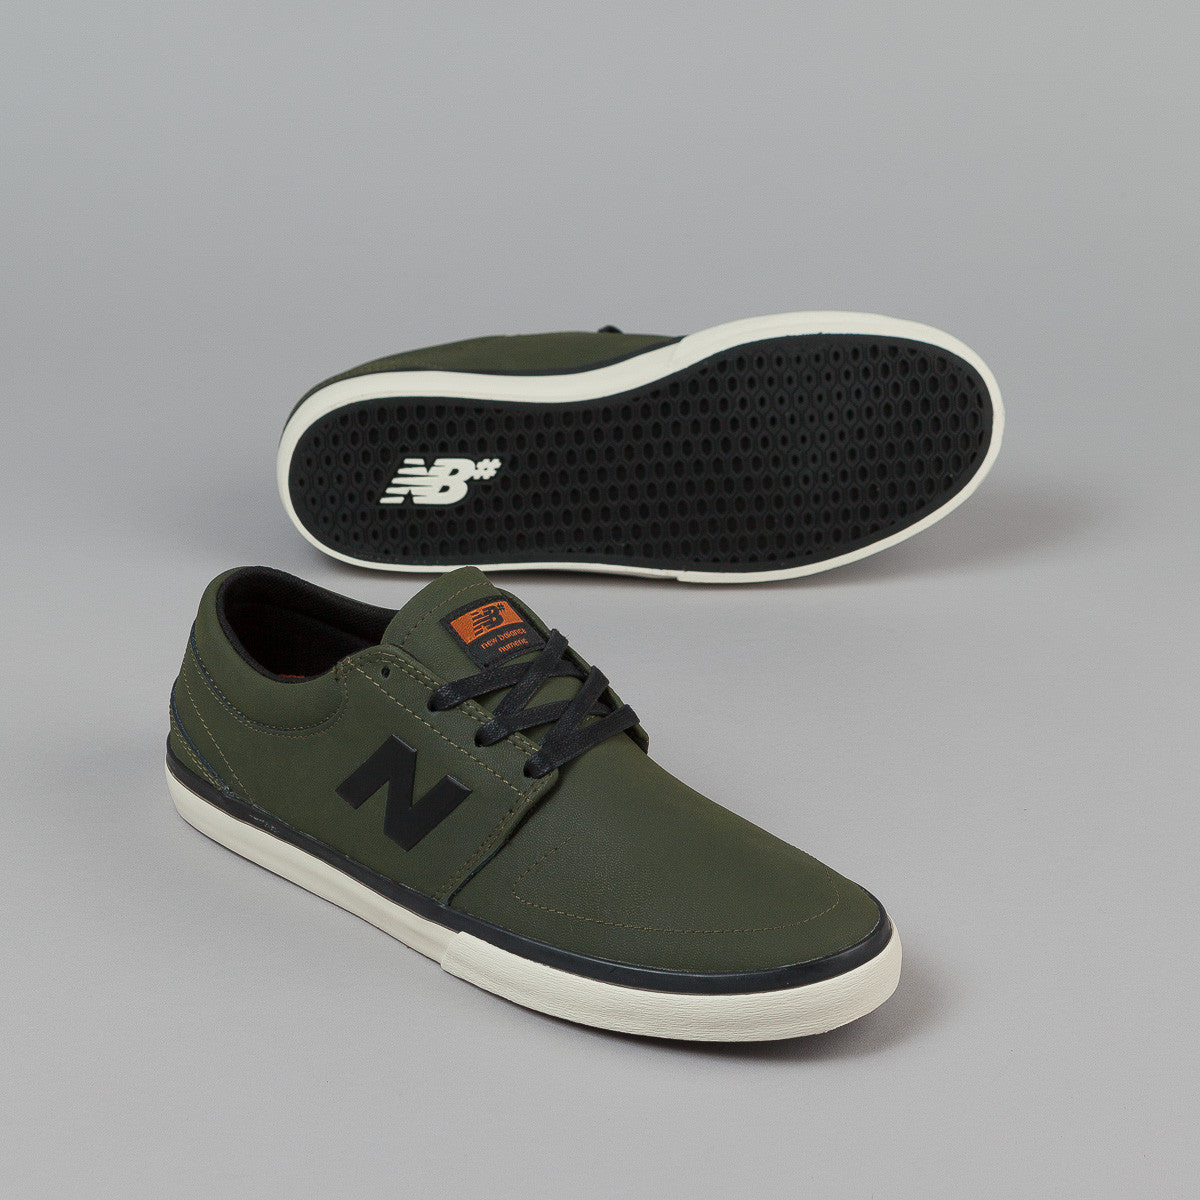 New Balance Numeric Brighton 344 Shoes - Olive